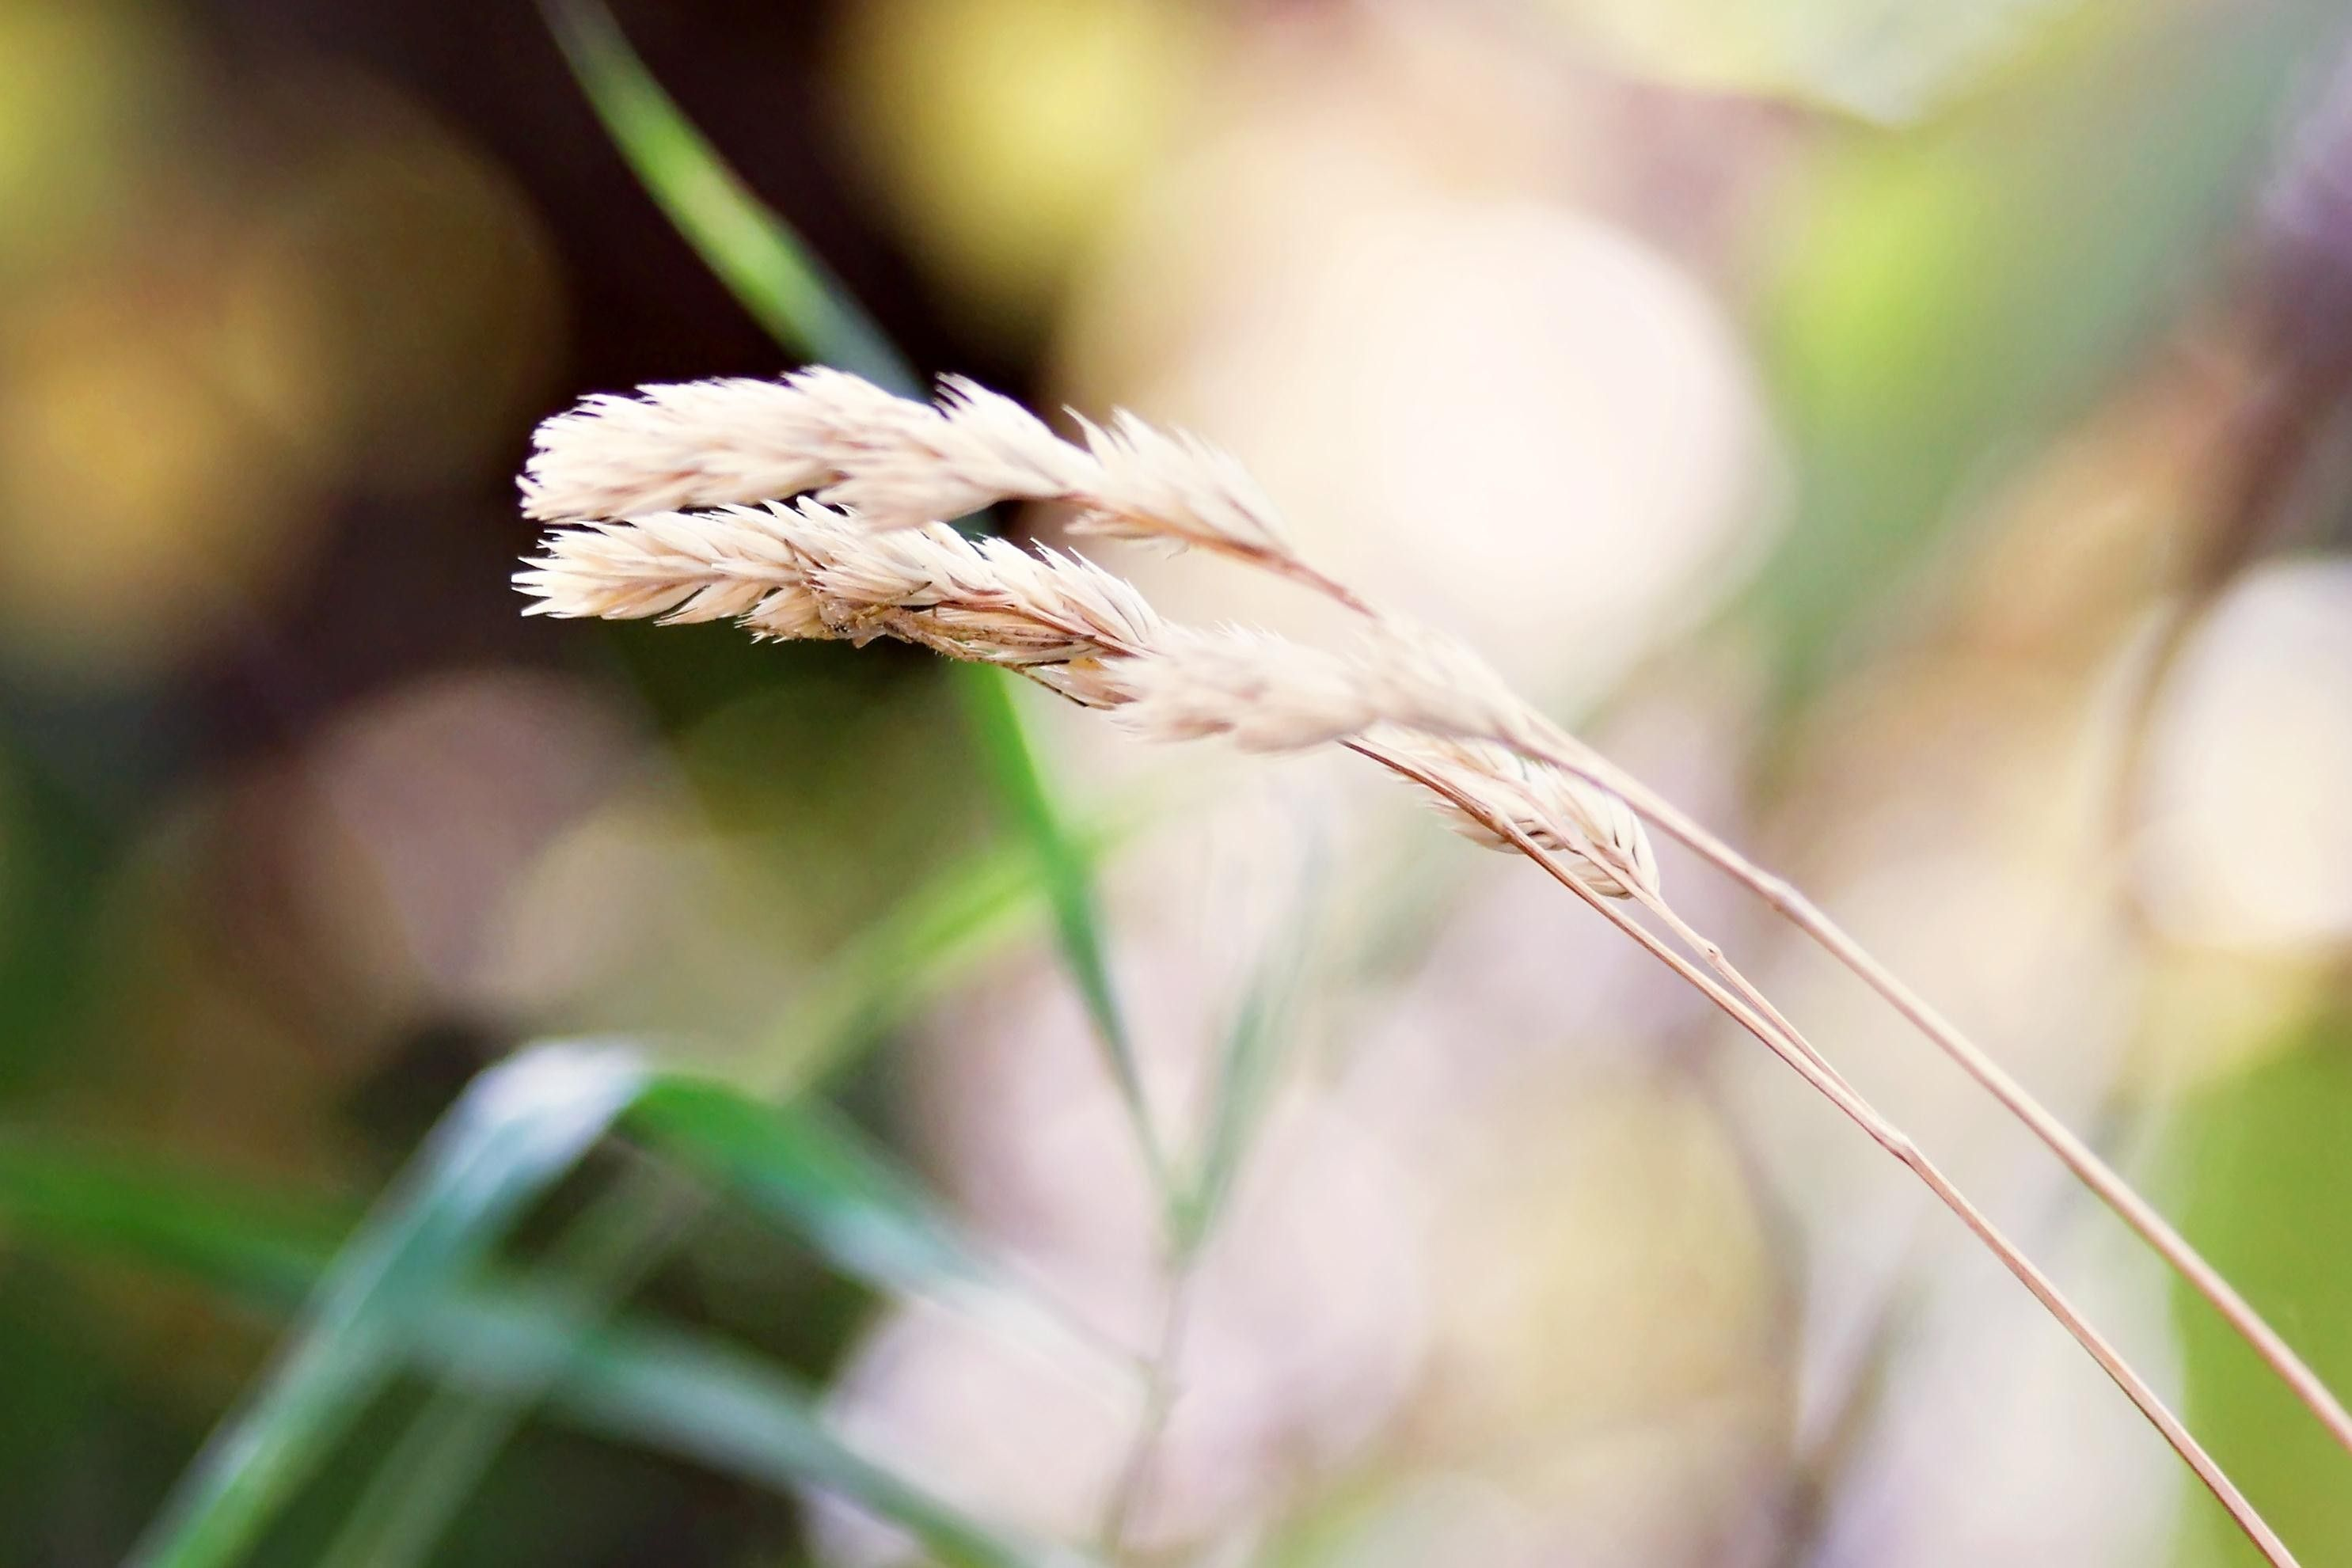 A few grass stalks with seeds at the end.